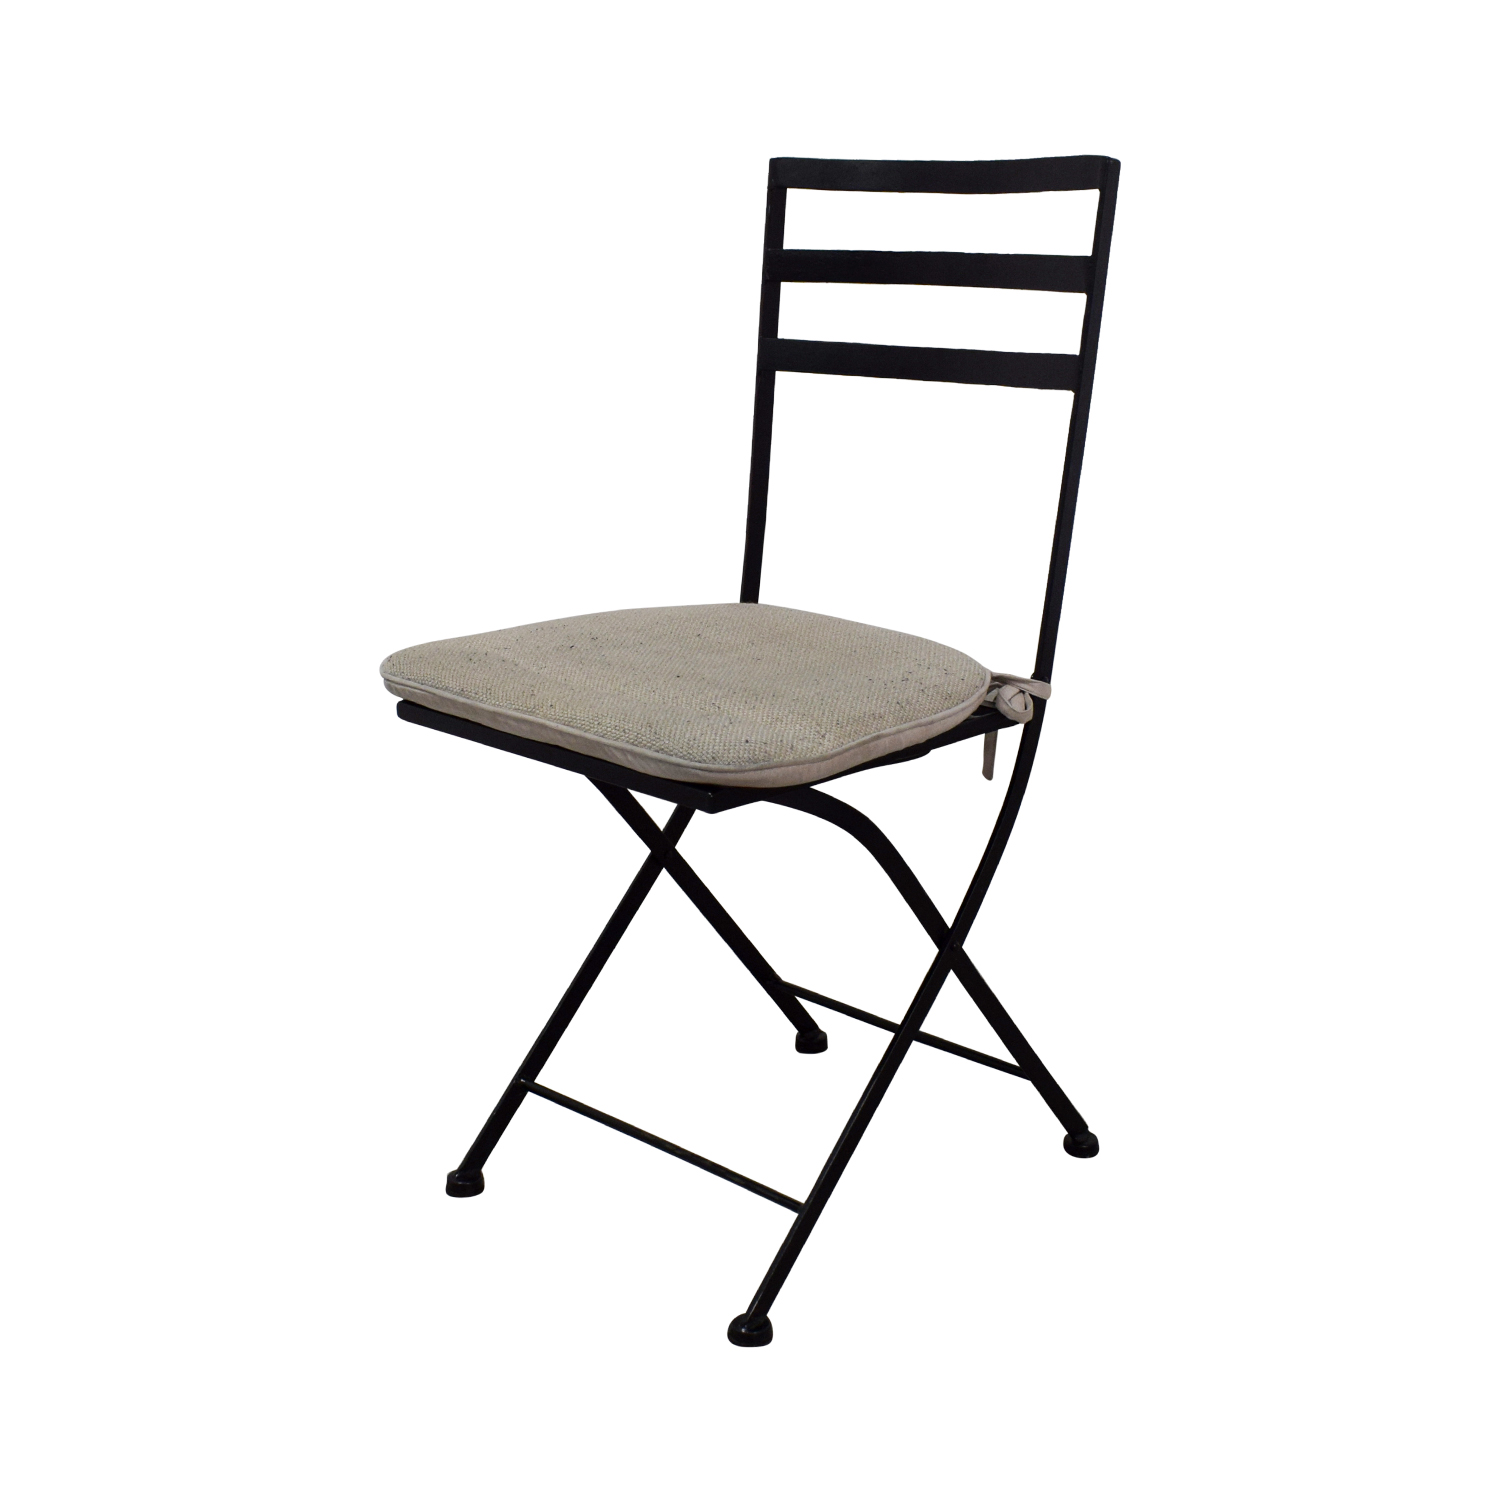 Fine 56 Off 4D Concepts 4D Concept Black Heavy Duty Foldable Chairs With Beige Cushions Chairs Ncnpc Chair Design For Home Ncnpcorg